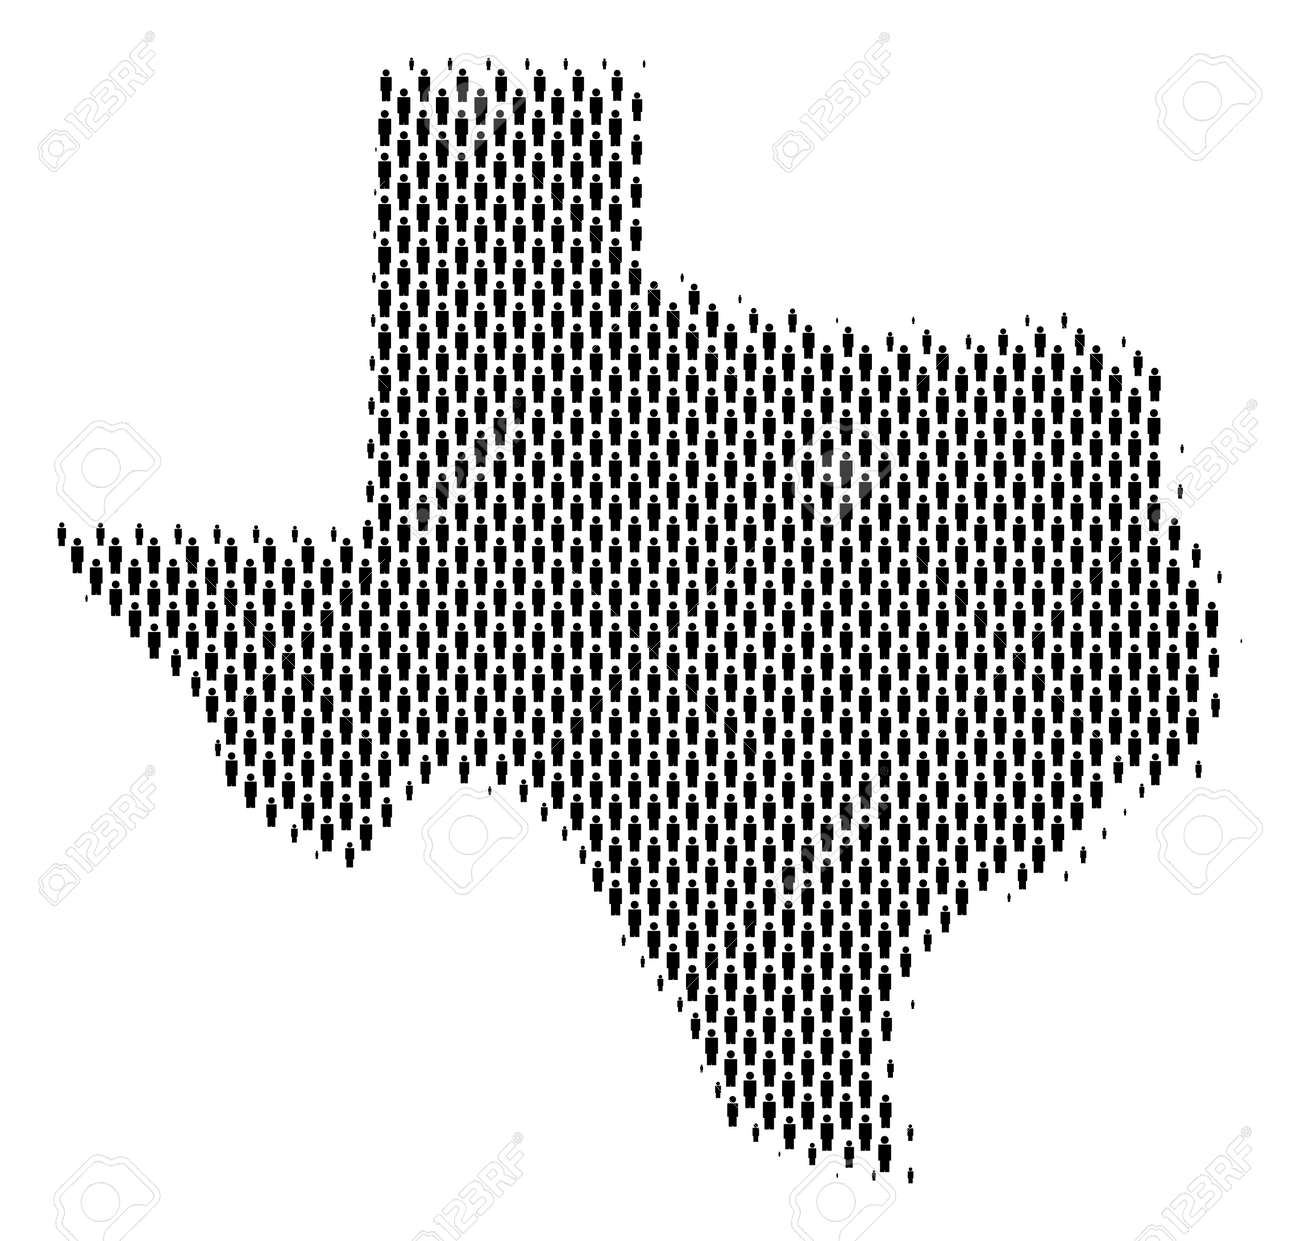 Population Map Of Texas.Demography Texas Map People Population Vector Cartography Mosaic